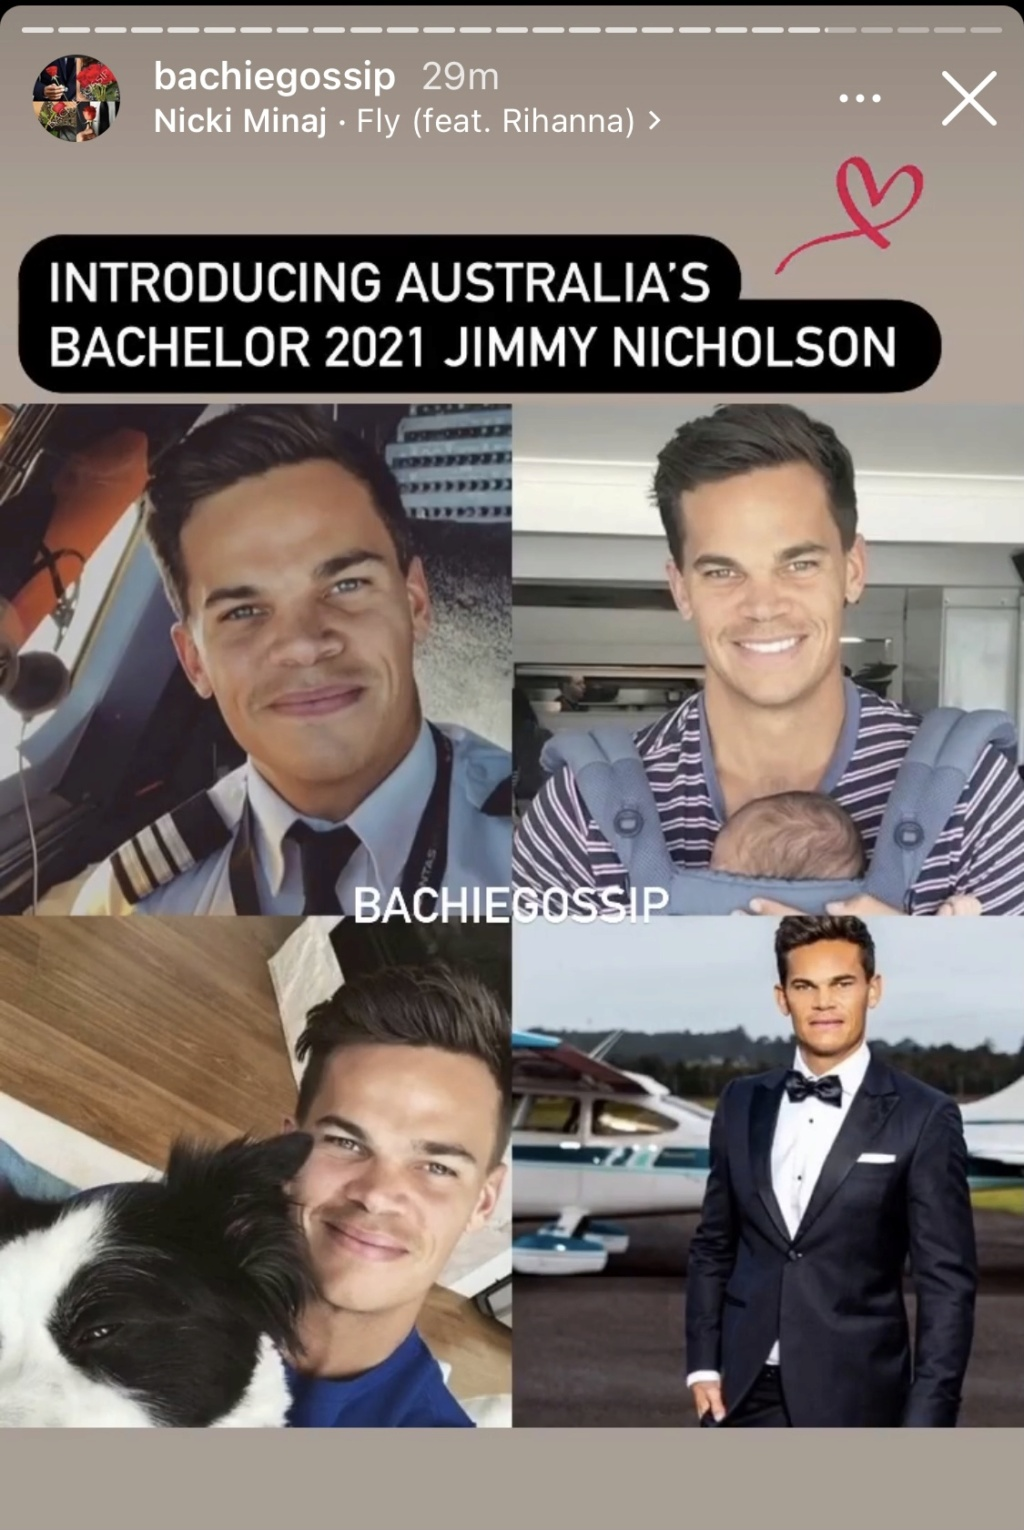 Bachelor Australia - Season 9 - Jimmy Nicholson - Discussion - *Sleuthing Spoilers*  - Page 7 36d44610